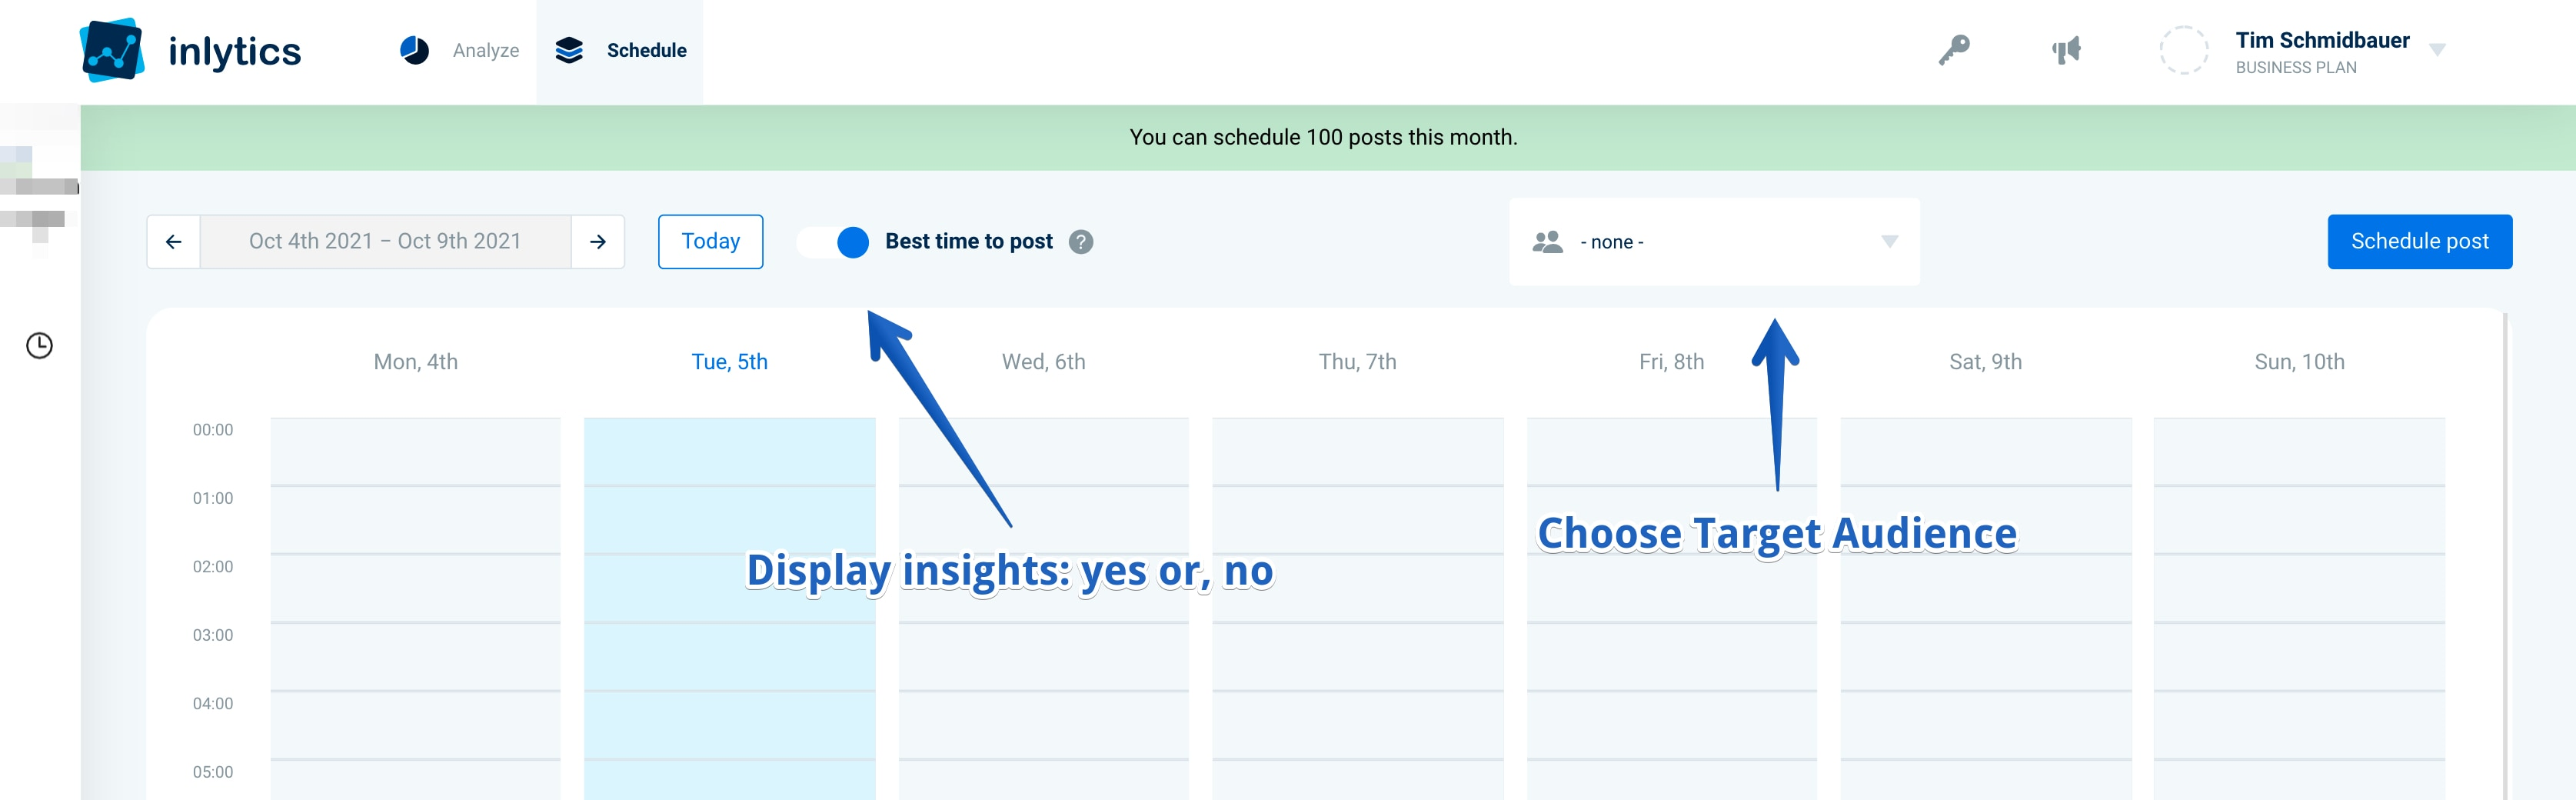 LinkedIn content scheduling tool with audience insights